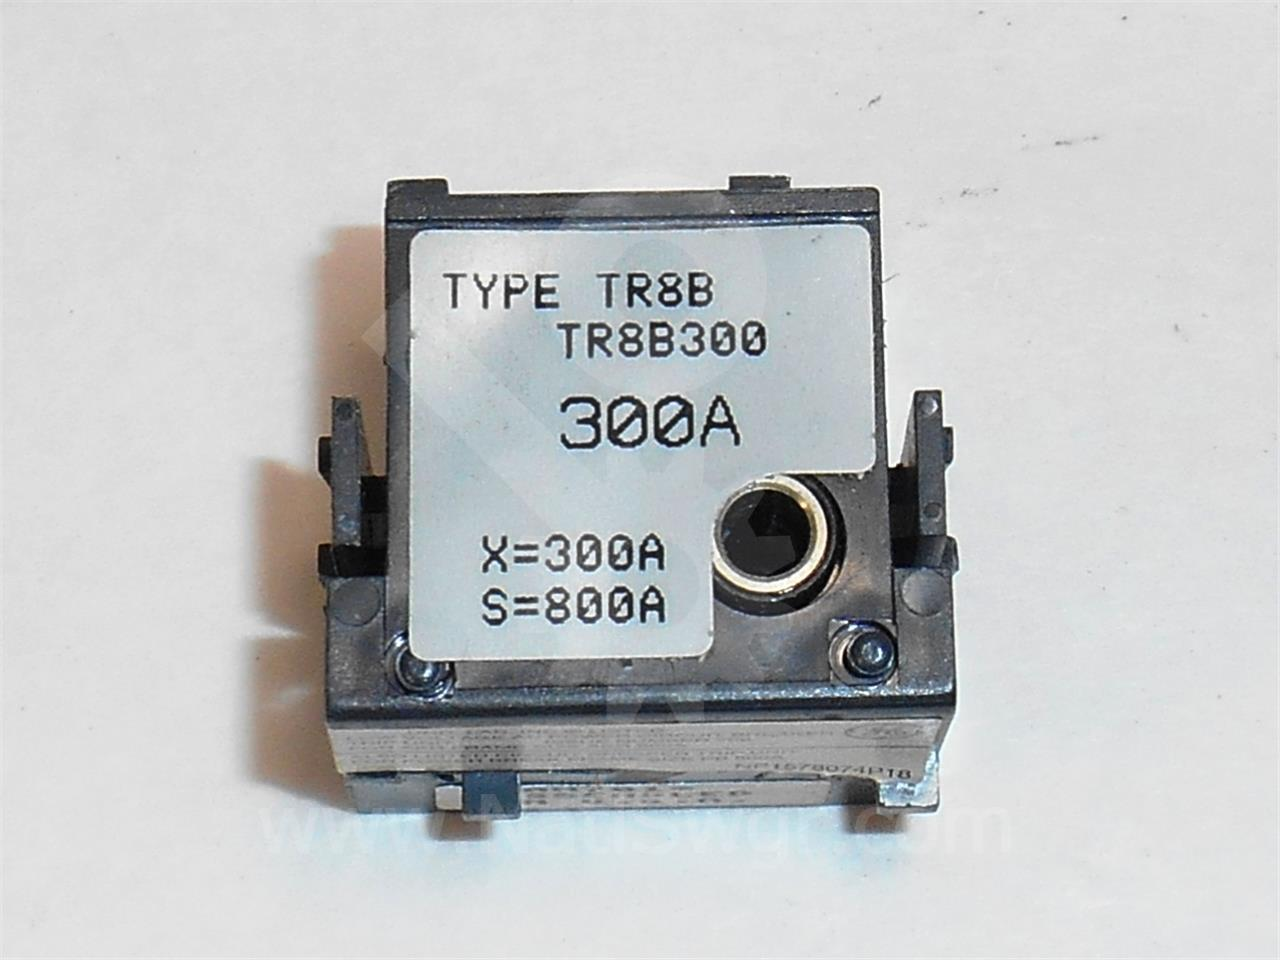 300A GE RATING PLUG 800A CT